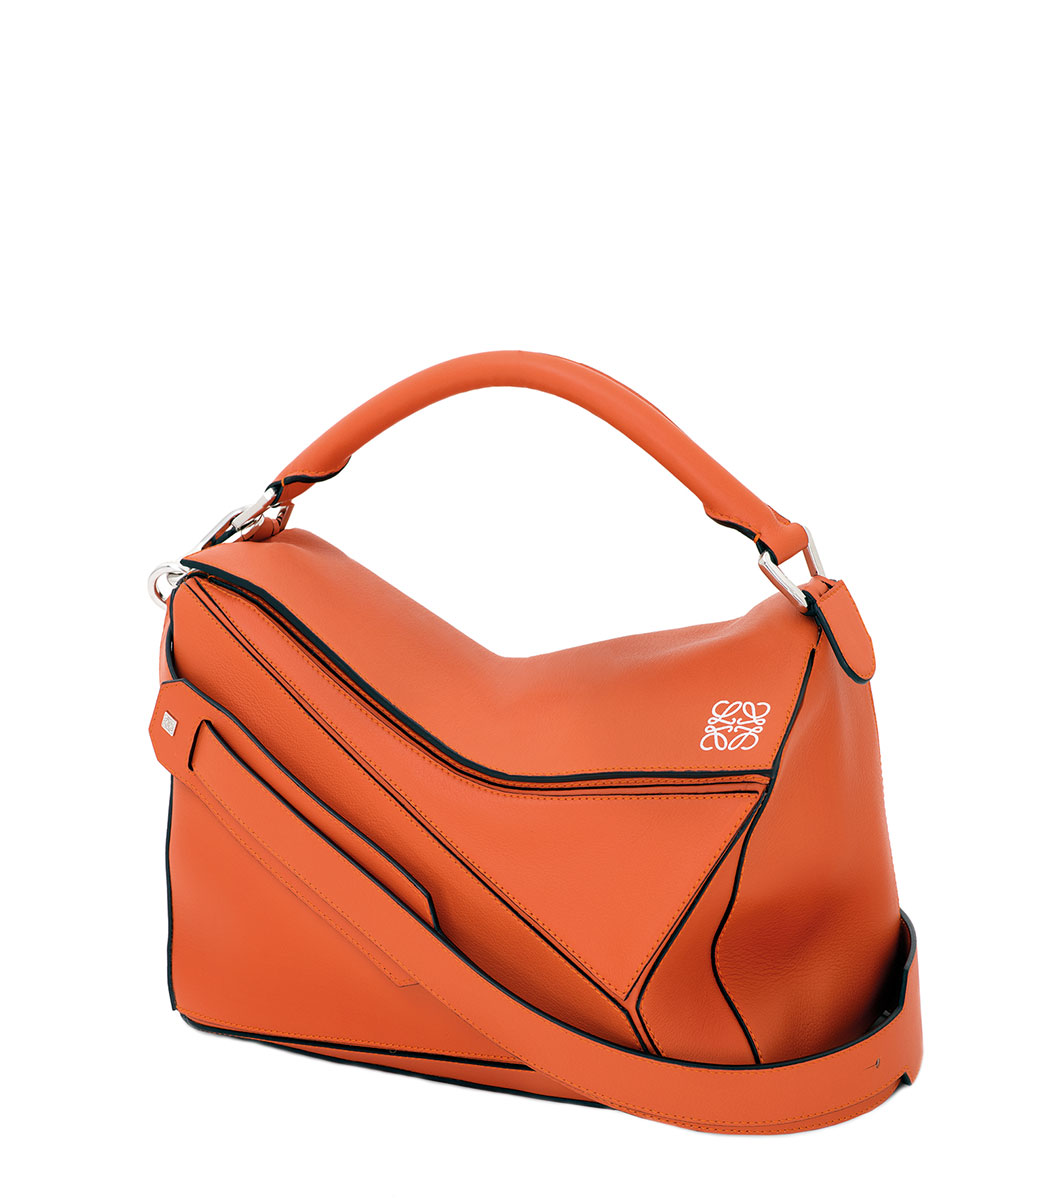 ShopBazaar Loewe Small Orange Puzzle Bag MAIN